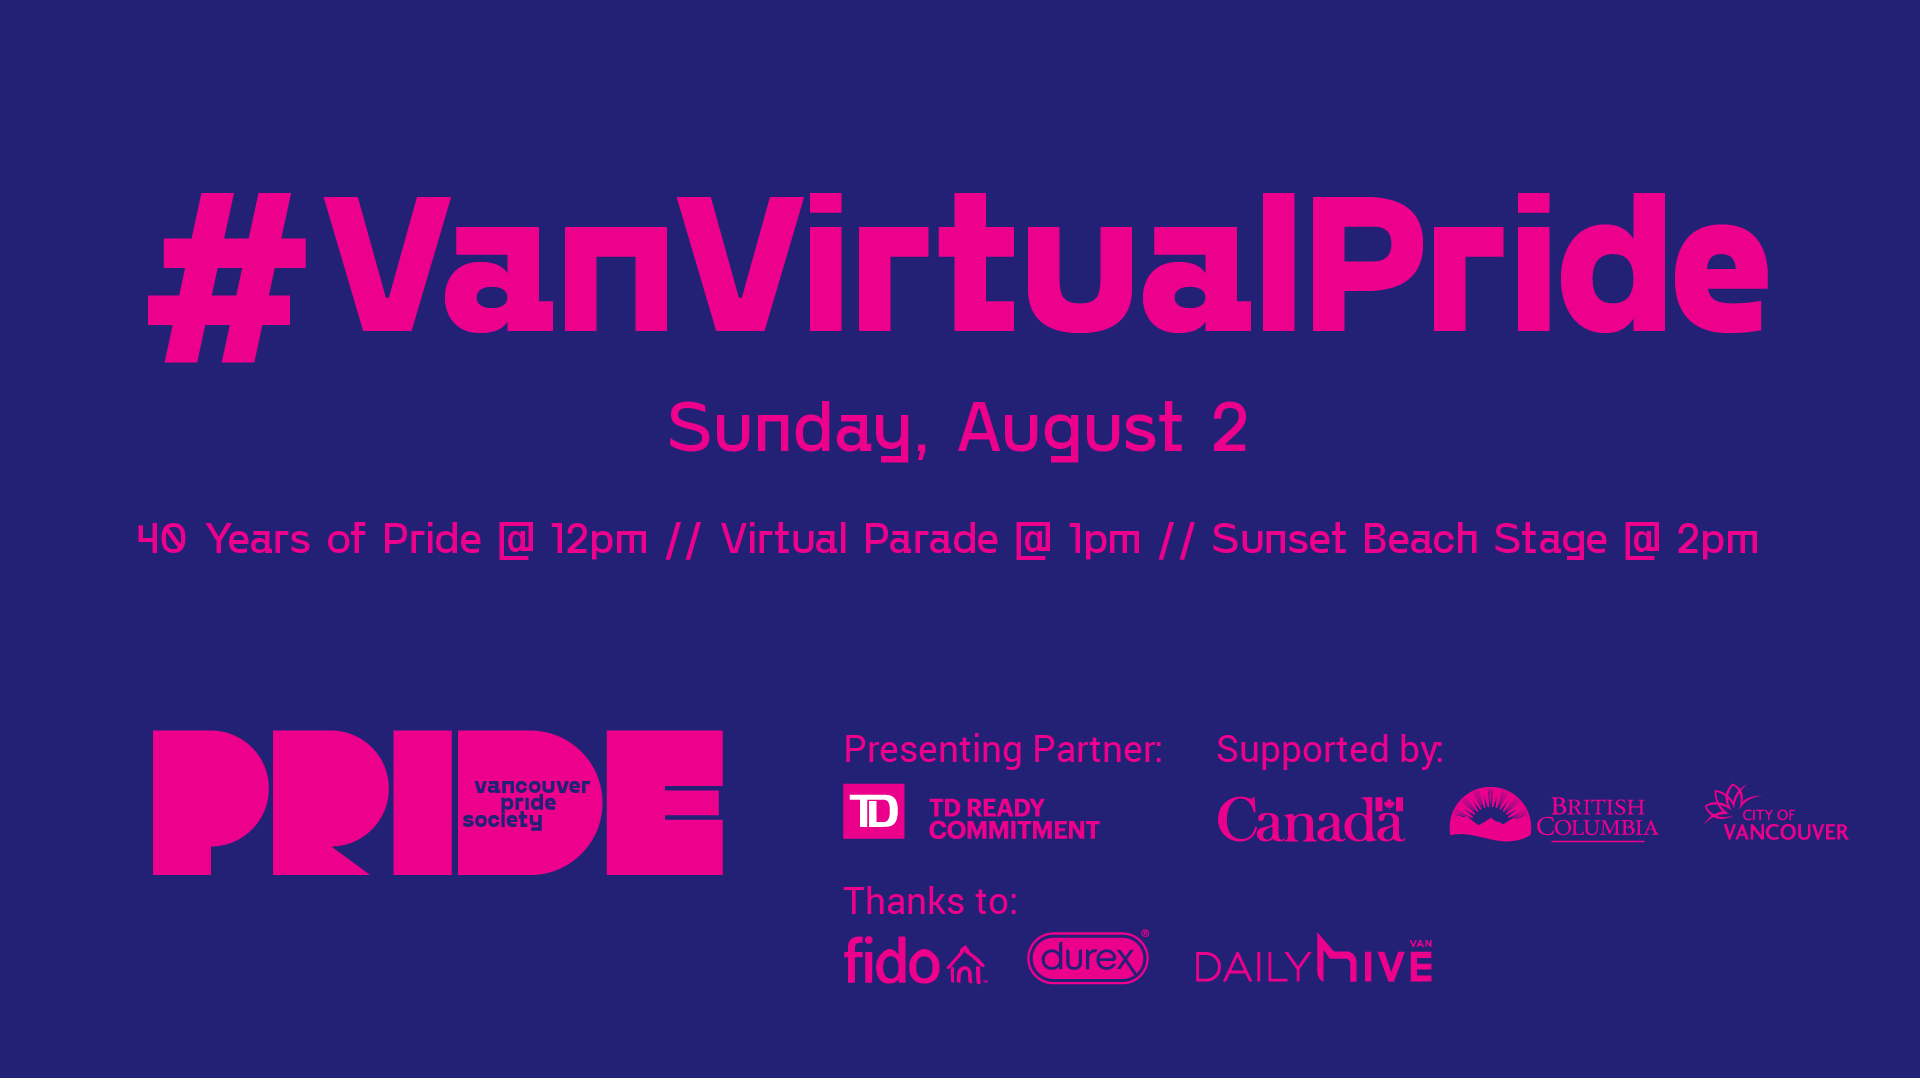 "A dark purple background with the text ""#VanVirtualPRIDE"" in bright pink. Smaller text reads ""Sunday, August 2"" with ""40 Years of Pride @12pm // Virtual Parade @1pm // Sunset Beach Stage @2pm"". The Vancouver Pride logo is in the bottom left. The bottom right reads ""Presenting Partner"" beside the TD logo. Text beside reads ""Supported by"" followed by the logos of the Government of Canada, British Columbia and City of Vancouver. Text below reads ""Thanks to:"" followed by the logos of fido, durex, and DailyHive."